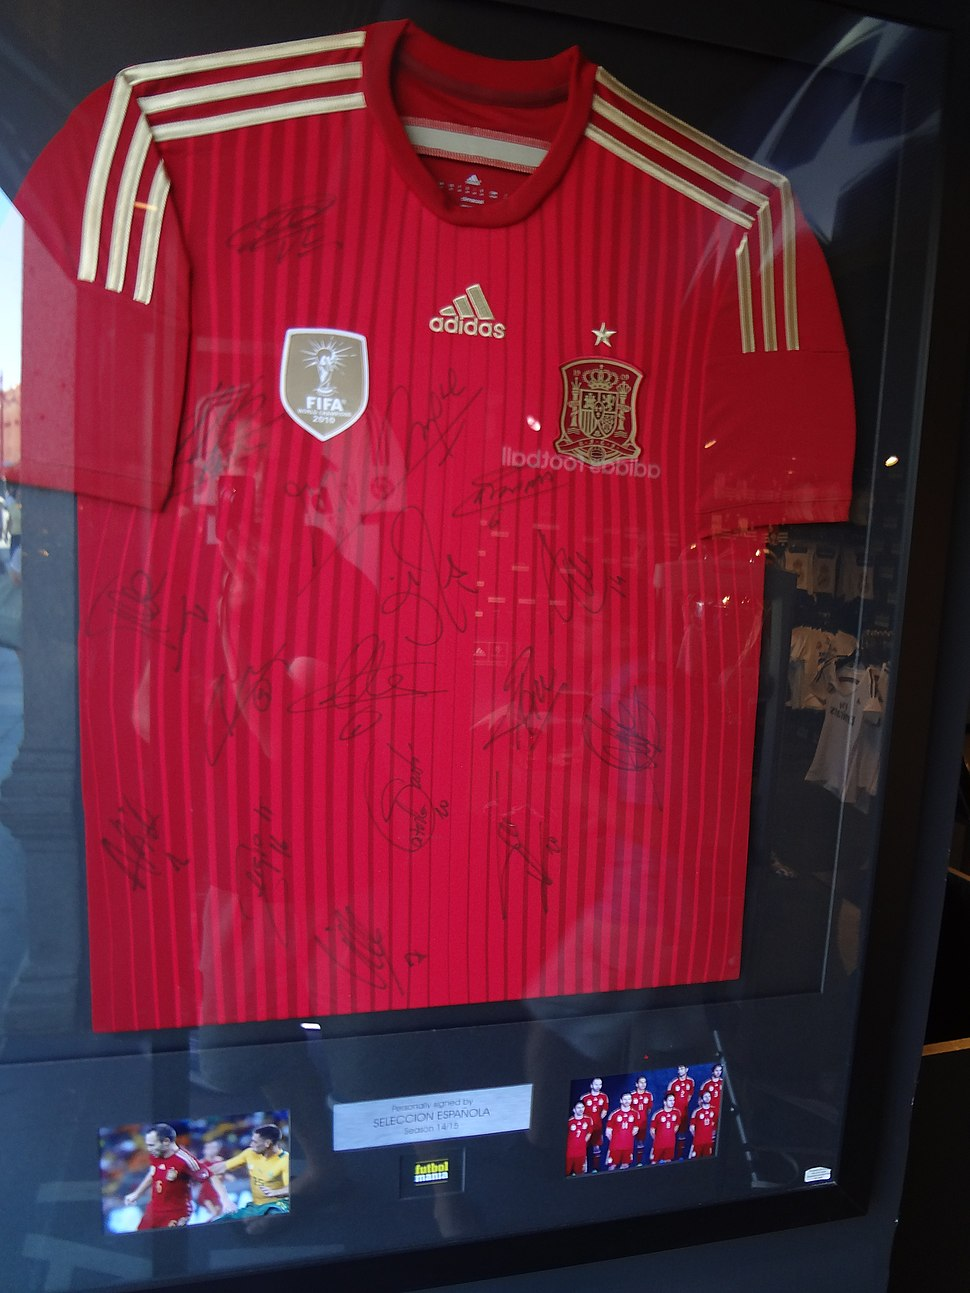 2010 World Cup Autographed by the entire Spanish National Team that won the 2010 World Cup